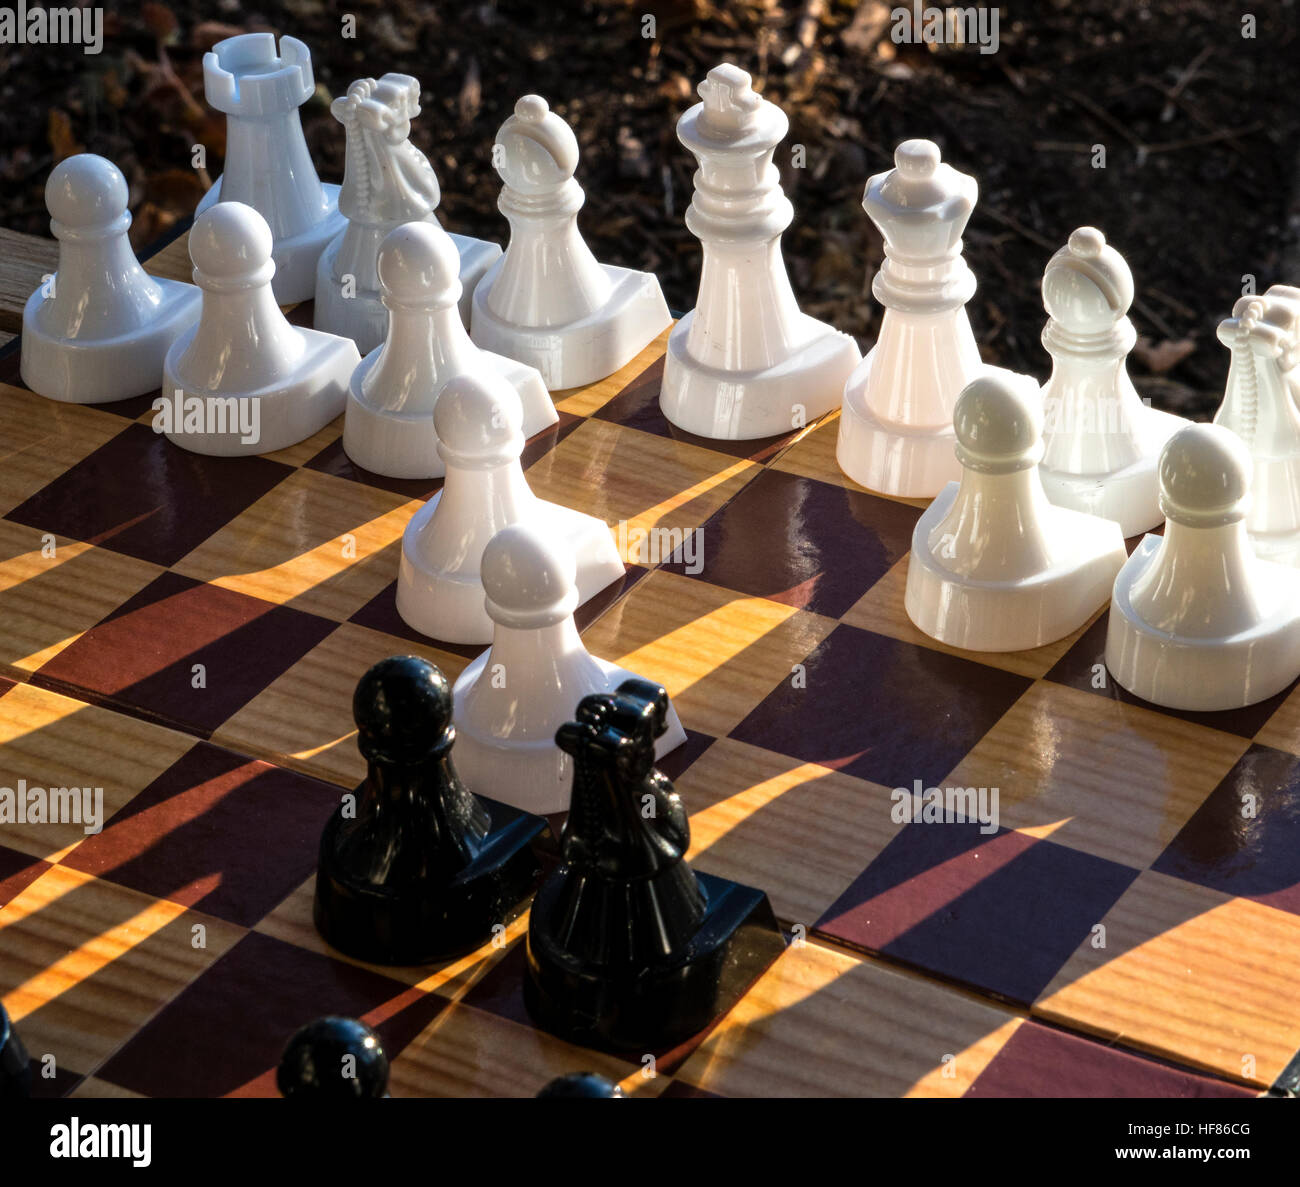 Chess set showing white and black chess pieces on a chess board - Stock Image